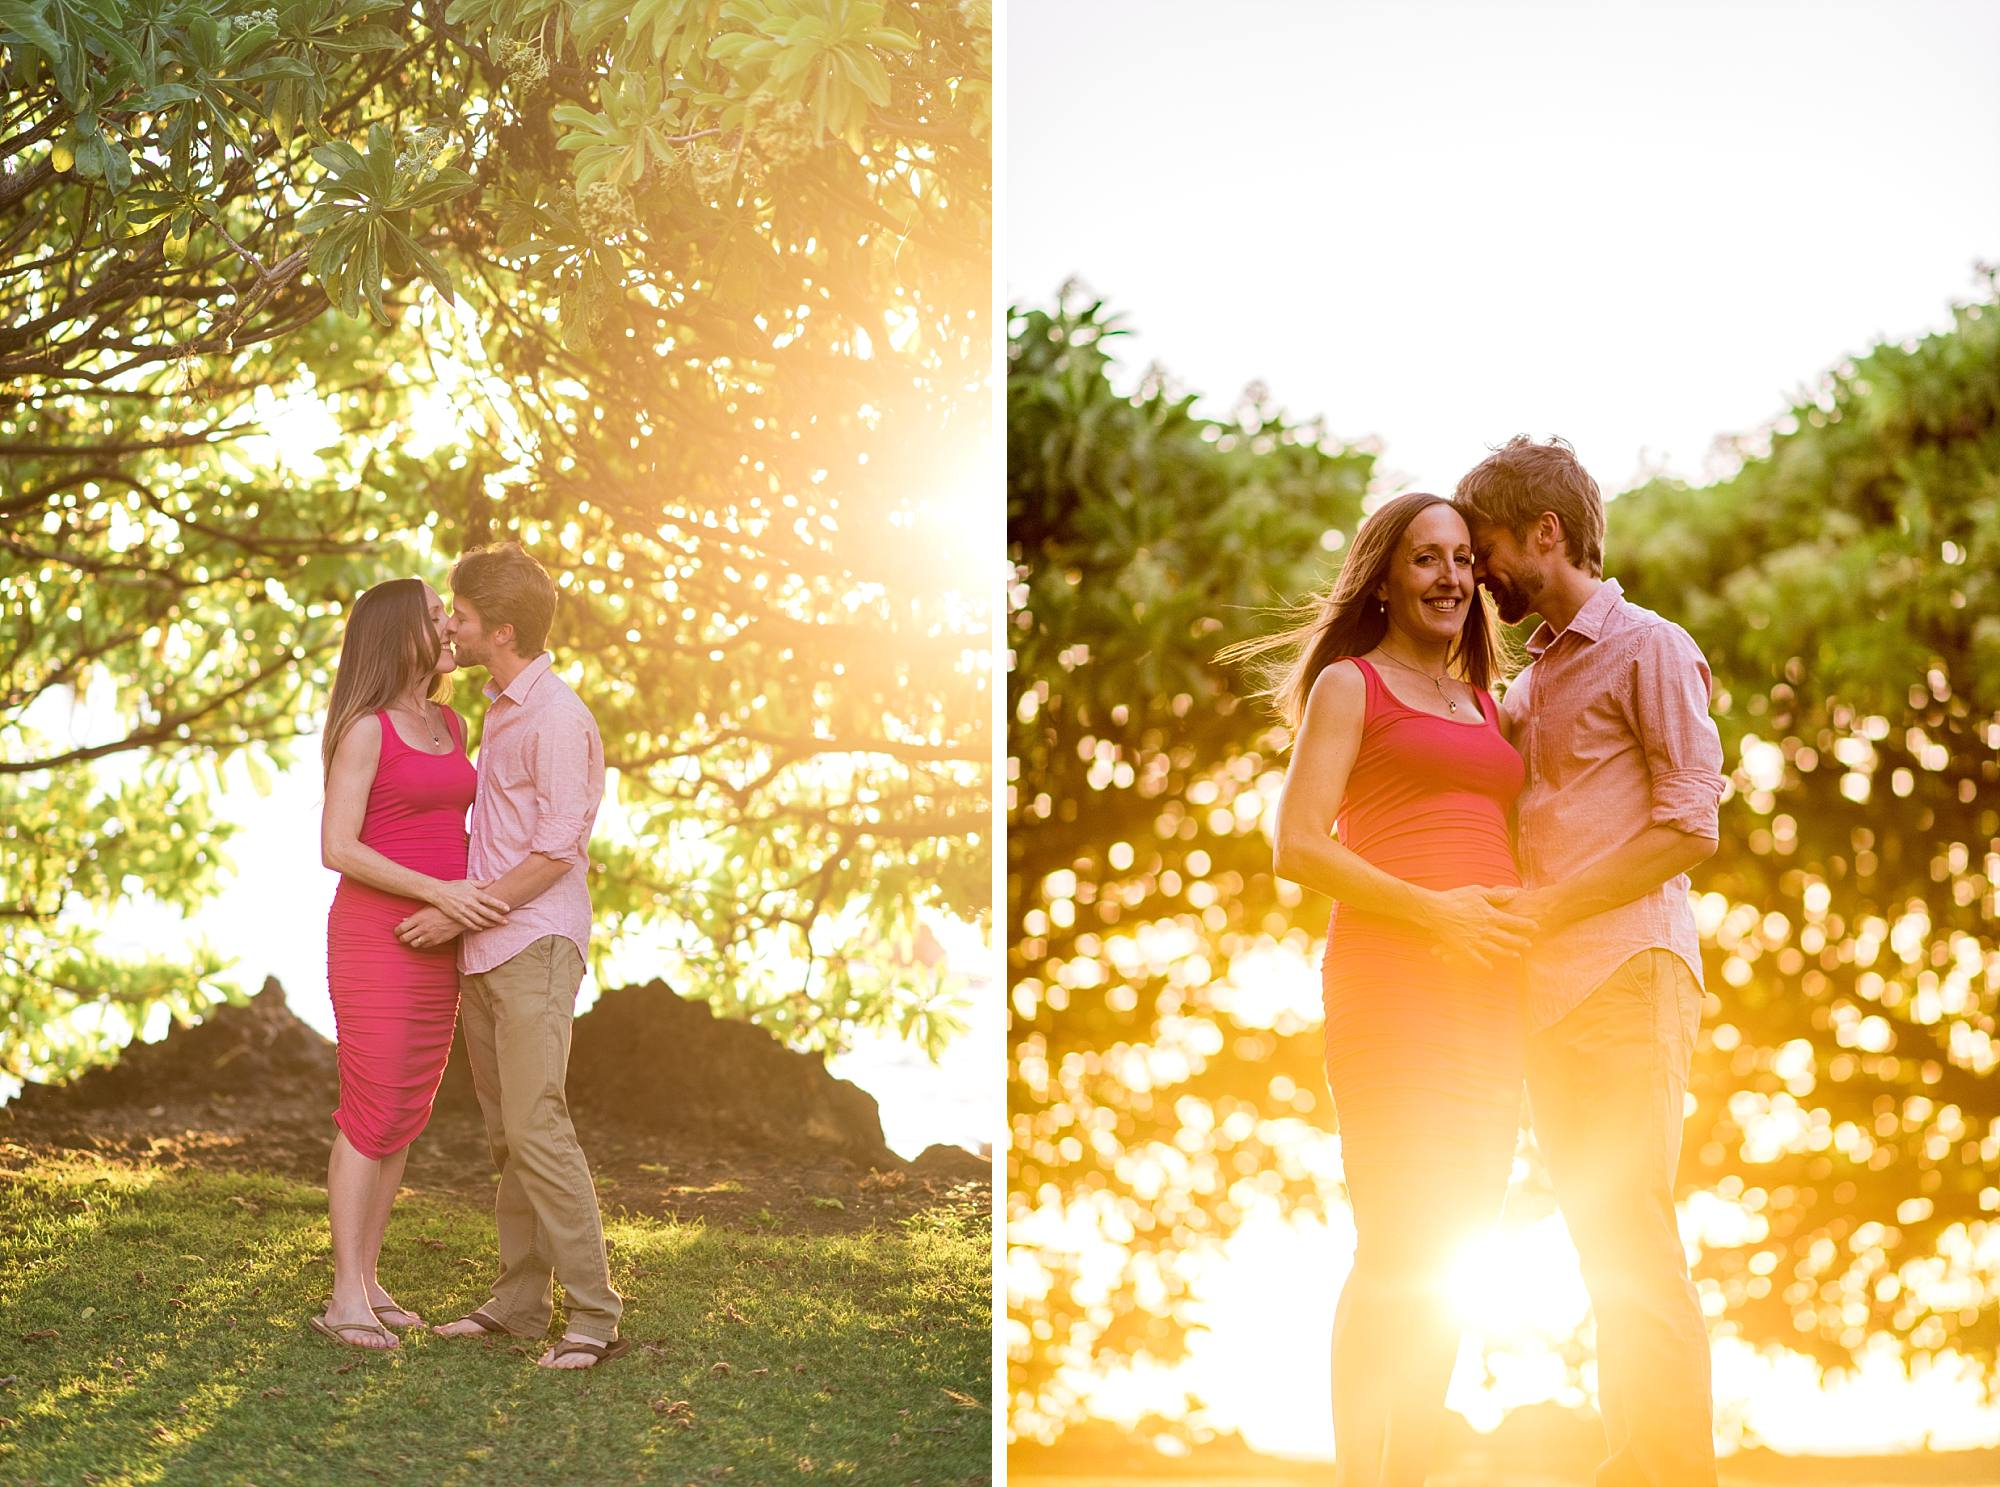 25-weeks pregnant and taking incredible maternity shots on Maui with the light streaming through the trees behind them